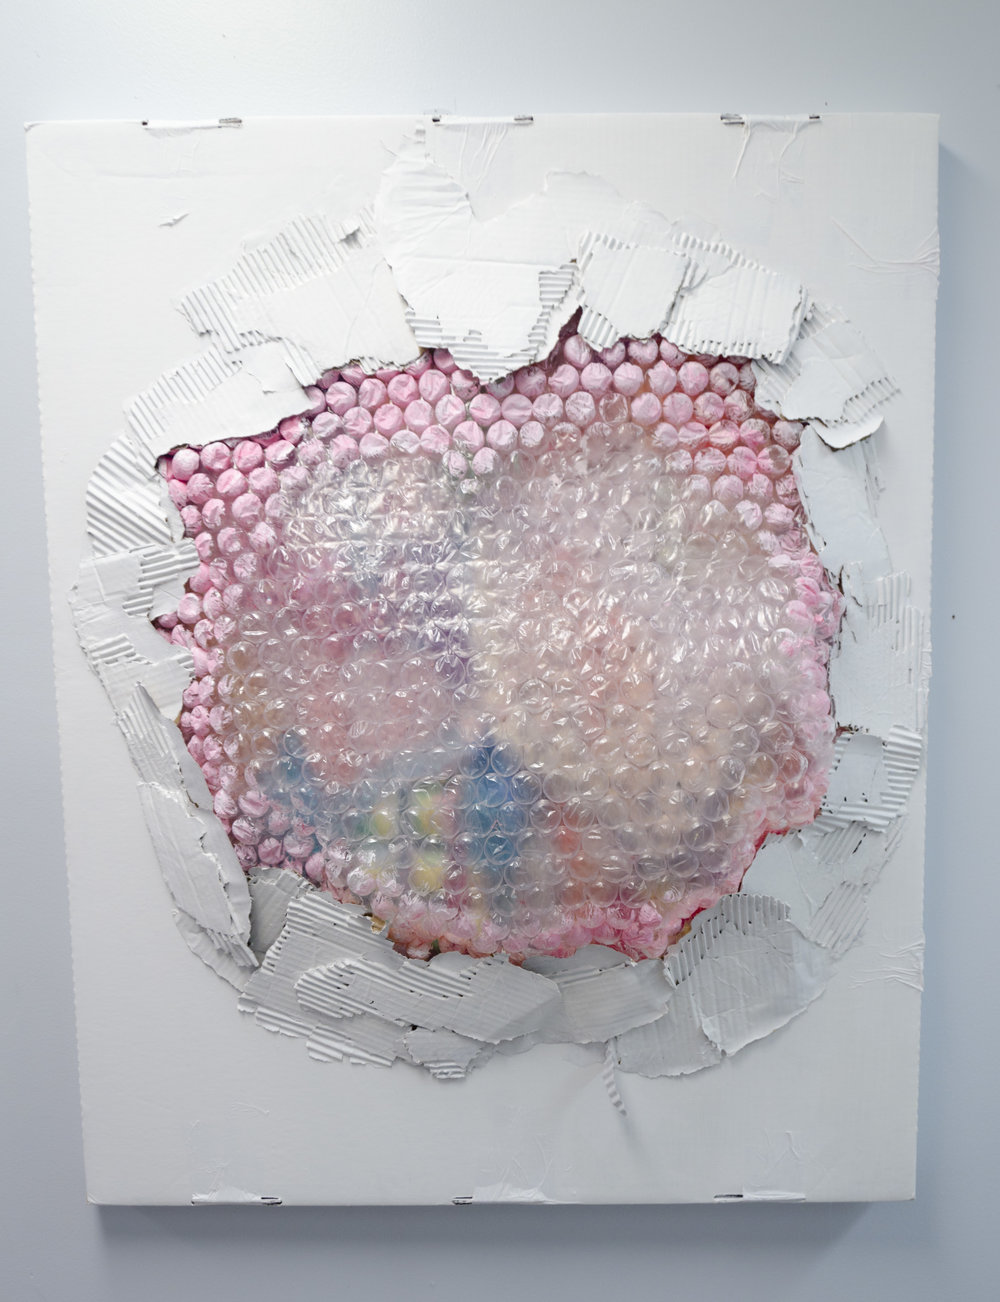 Surface Tension    Cardboard, bubble wrap, acrylic paint, glitter, and sequins  2017